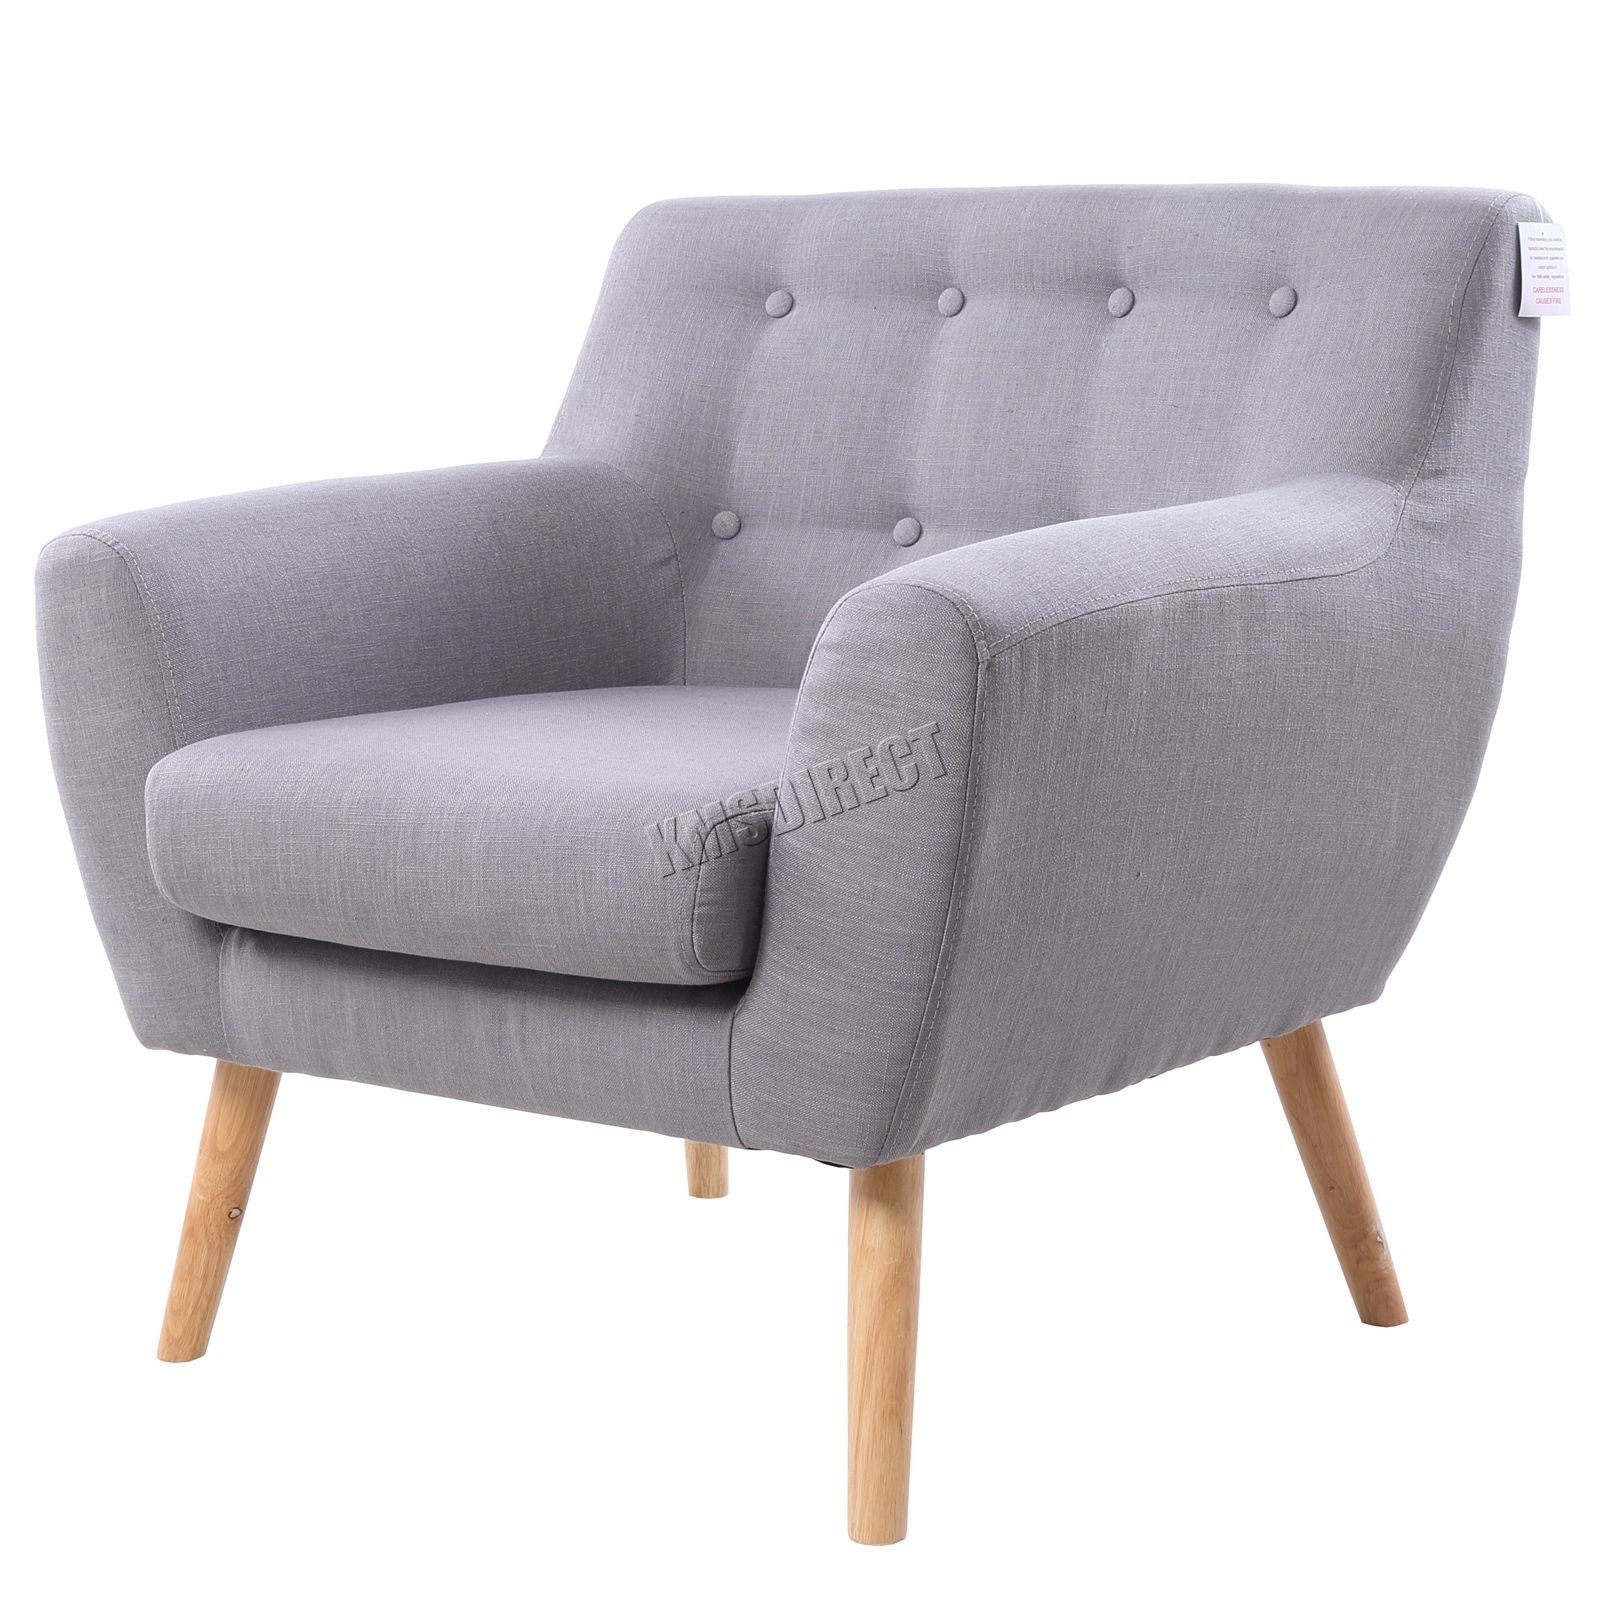 Linen Fabric 1 Single Seat Sofa